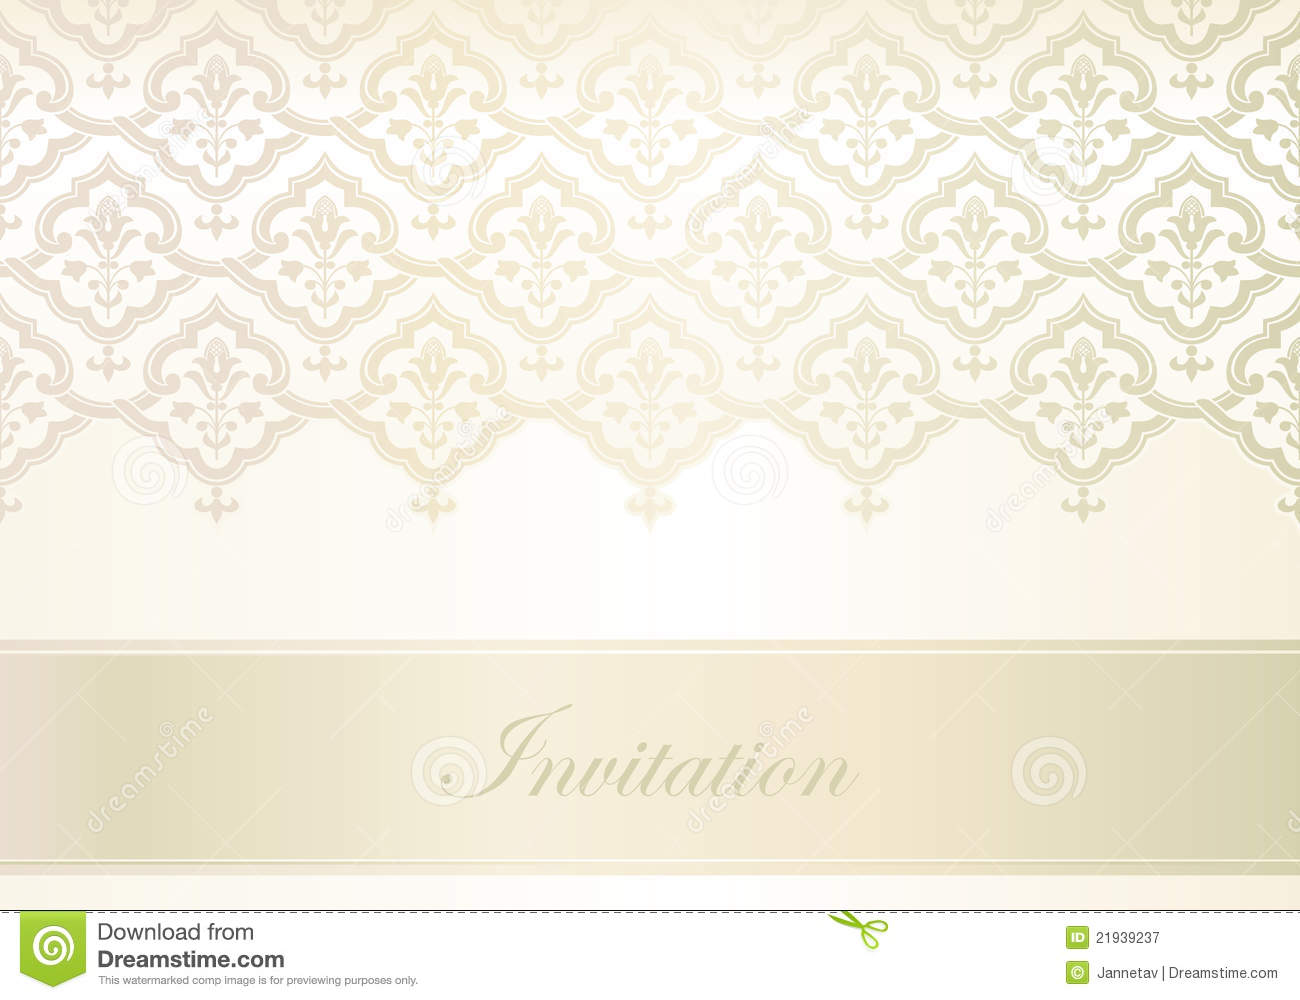 Engagement Party Sample Invitations is best invitations example